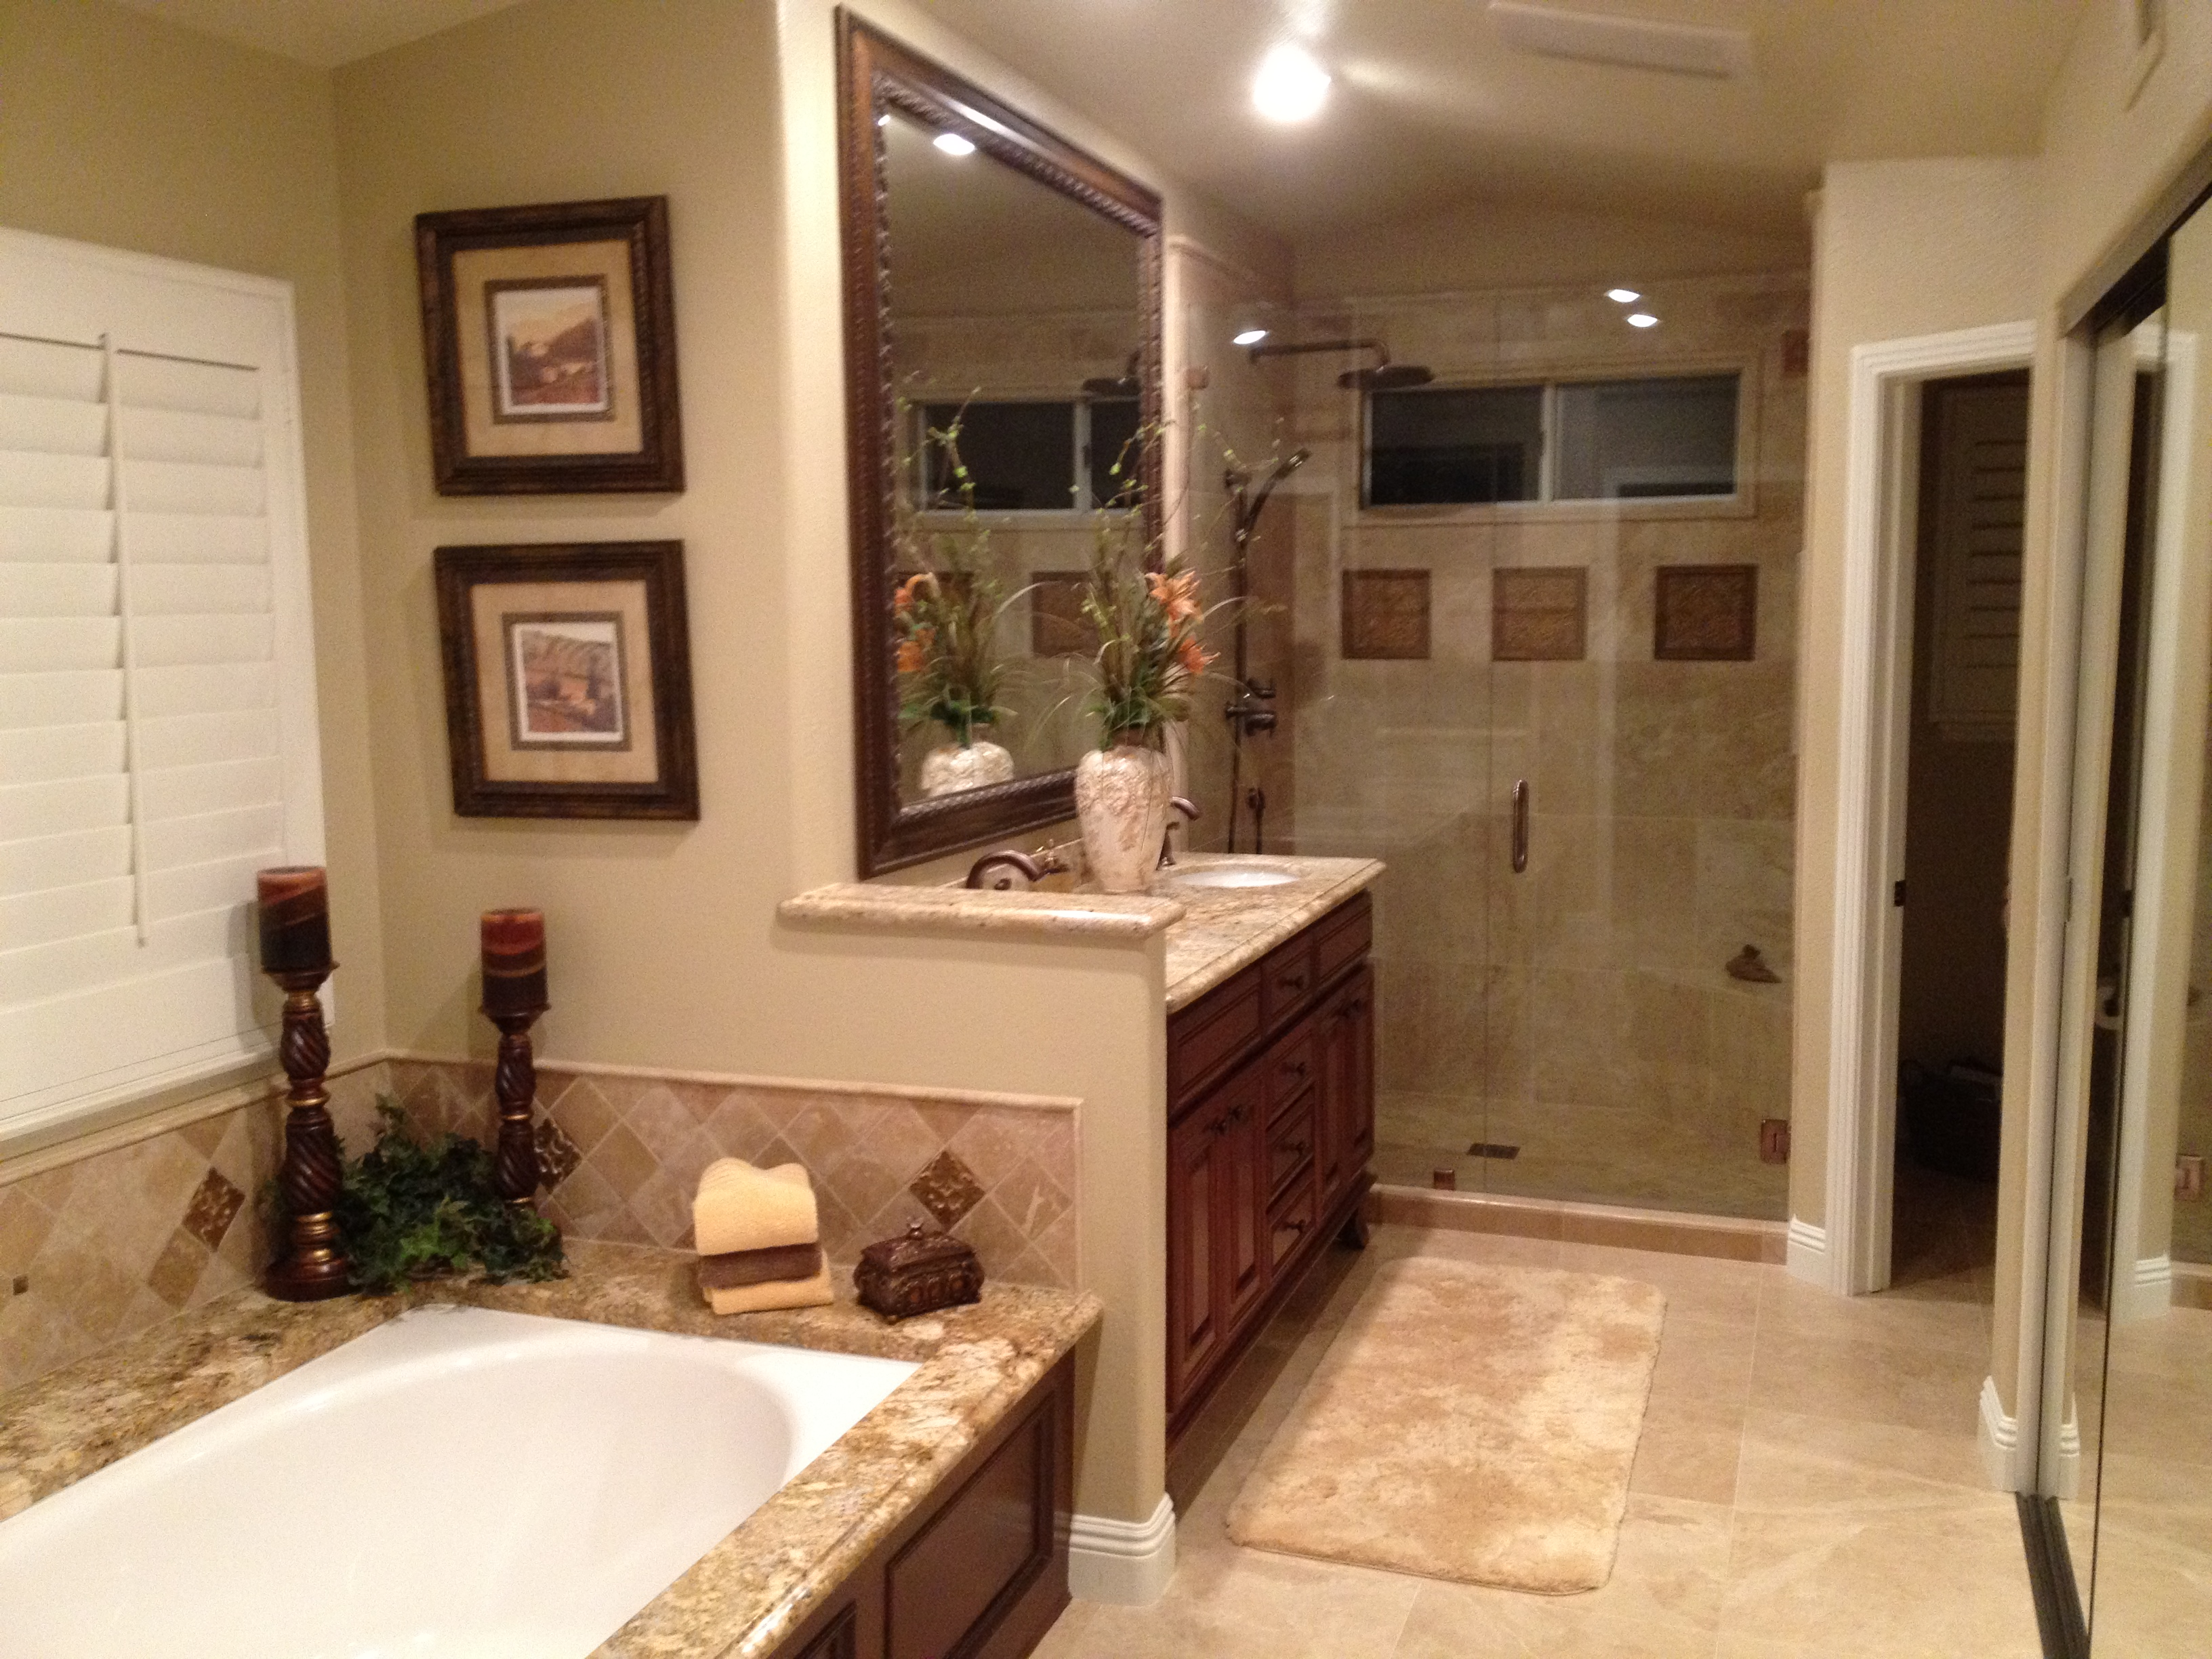 Bathroom Remodeling Orange County bathroom remodel orange county, ca | custom bathrooms in orange county